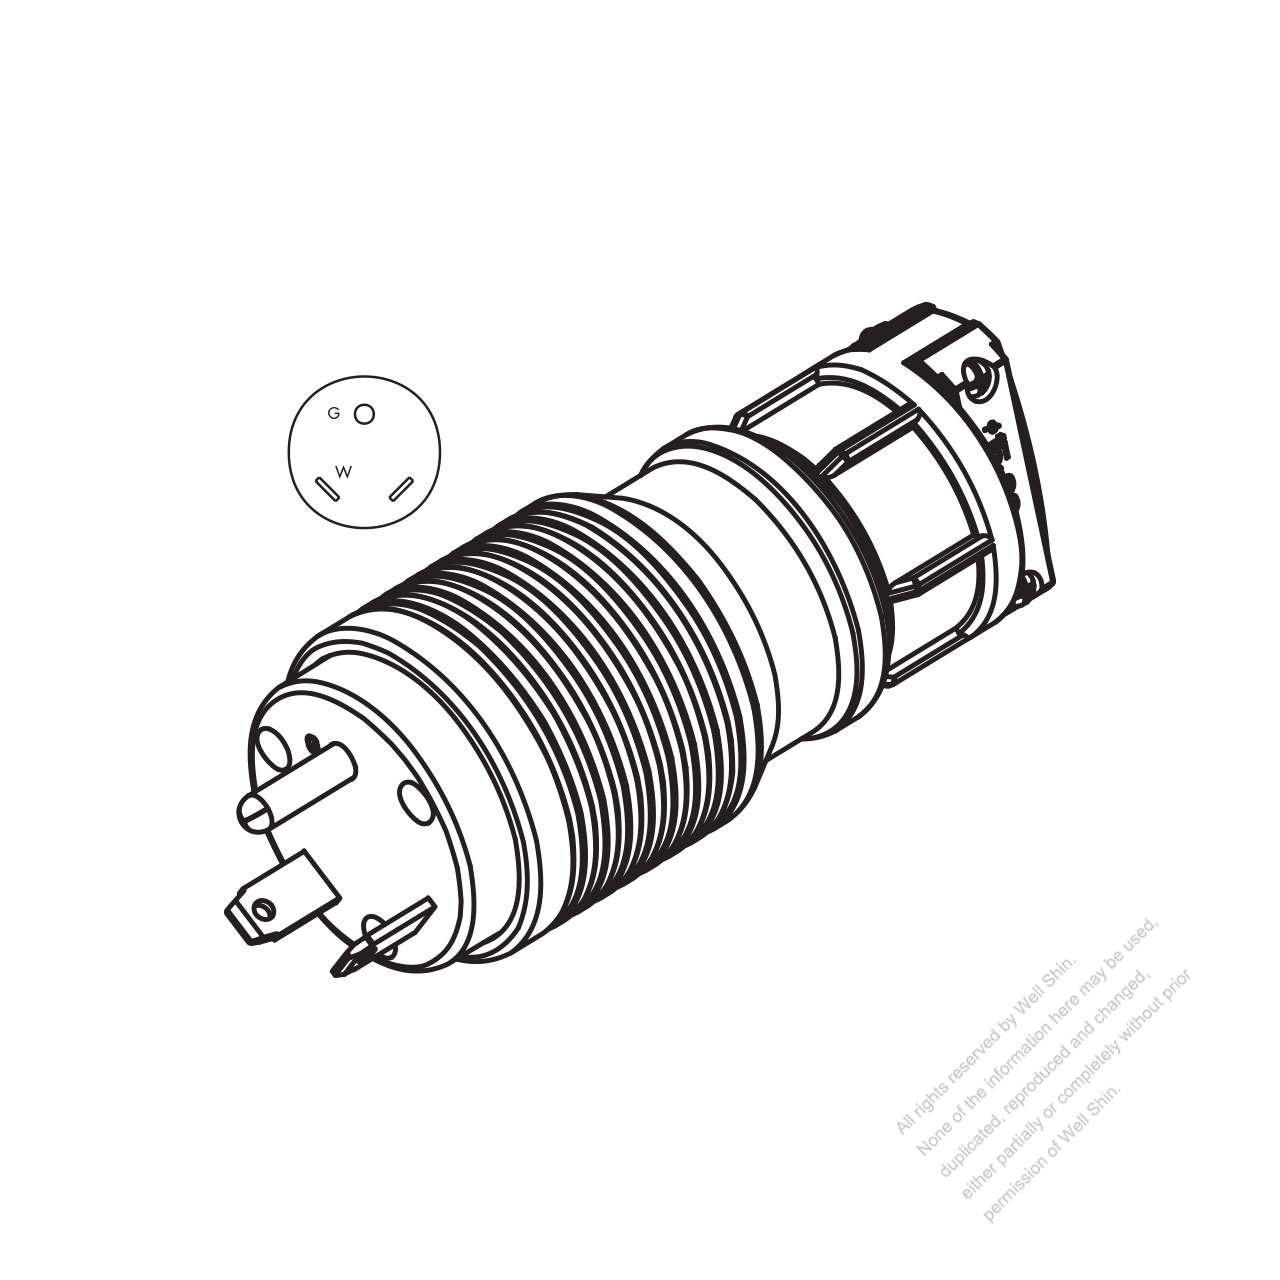 How To Wire A 120v Plug as well 50   Rv Outlet Diagram further Wiring Diagram For 30   125 Volt Rv Receptacle as well Nema L6 30r Wiring Diagram moreover  on wiring diagram for 30 amp 125 volt rv receptacle